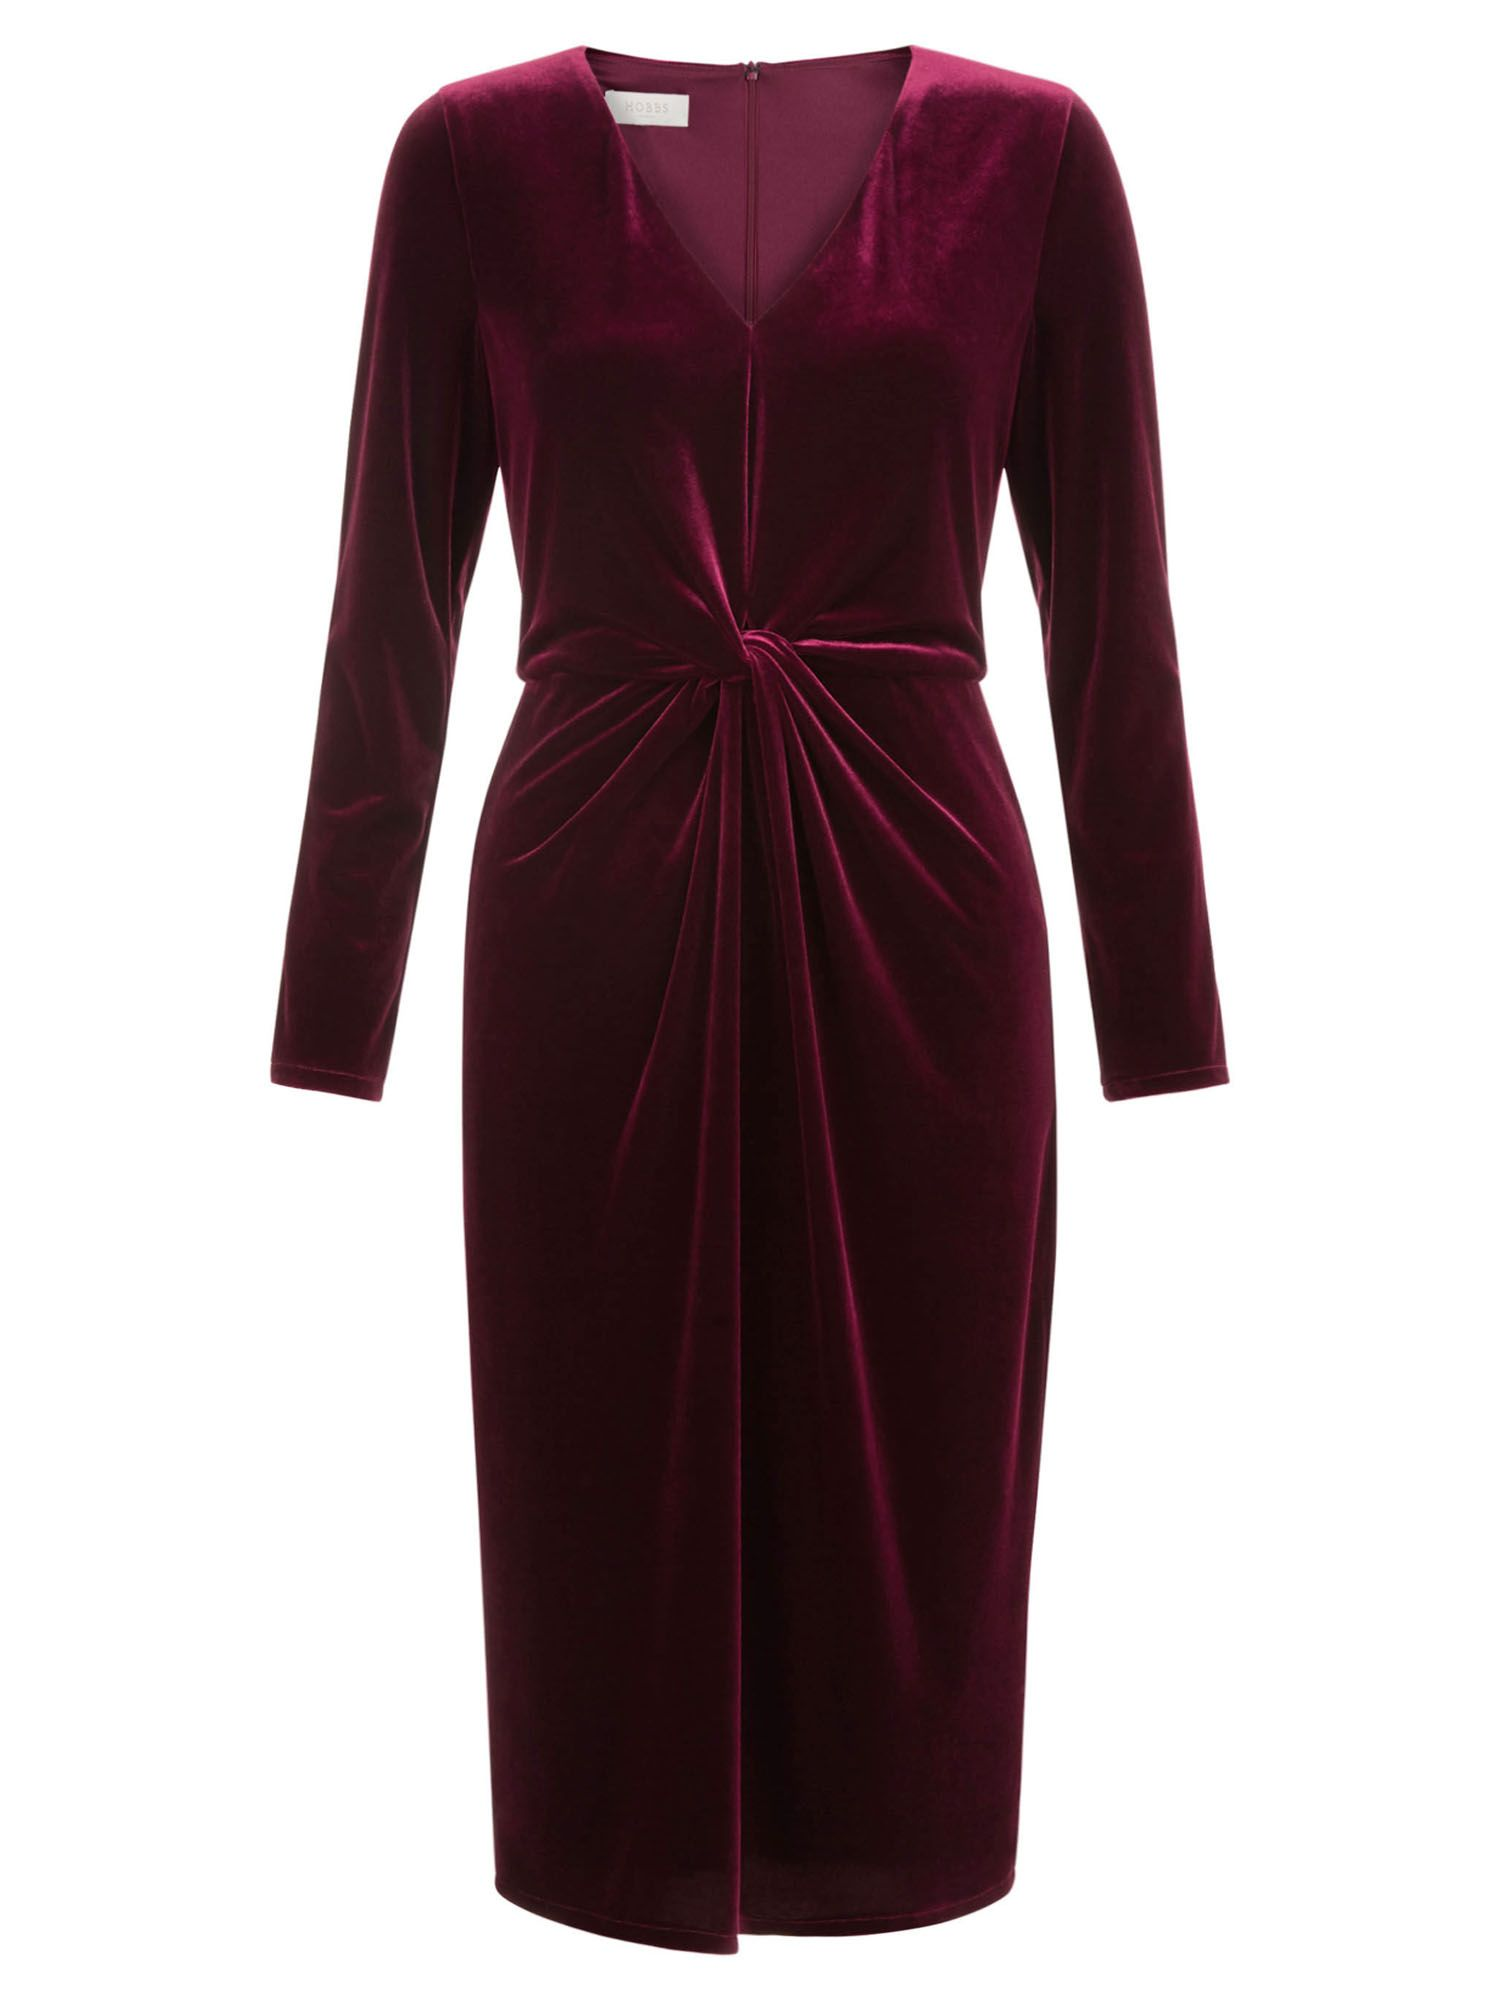 Hobbs Emilia Dress, Red